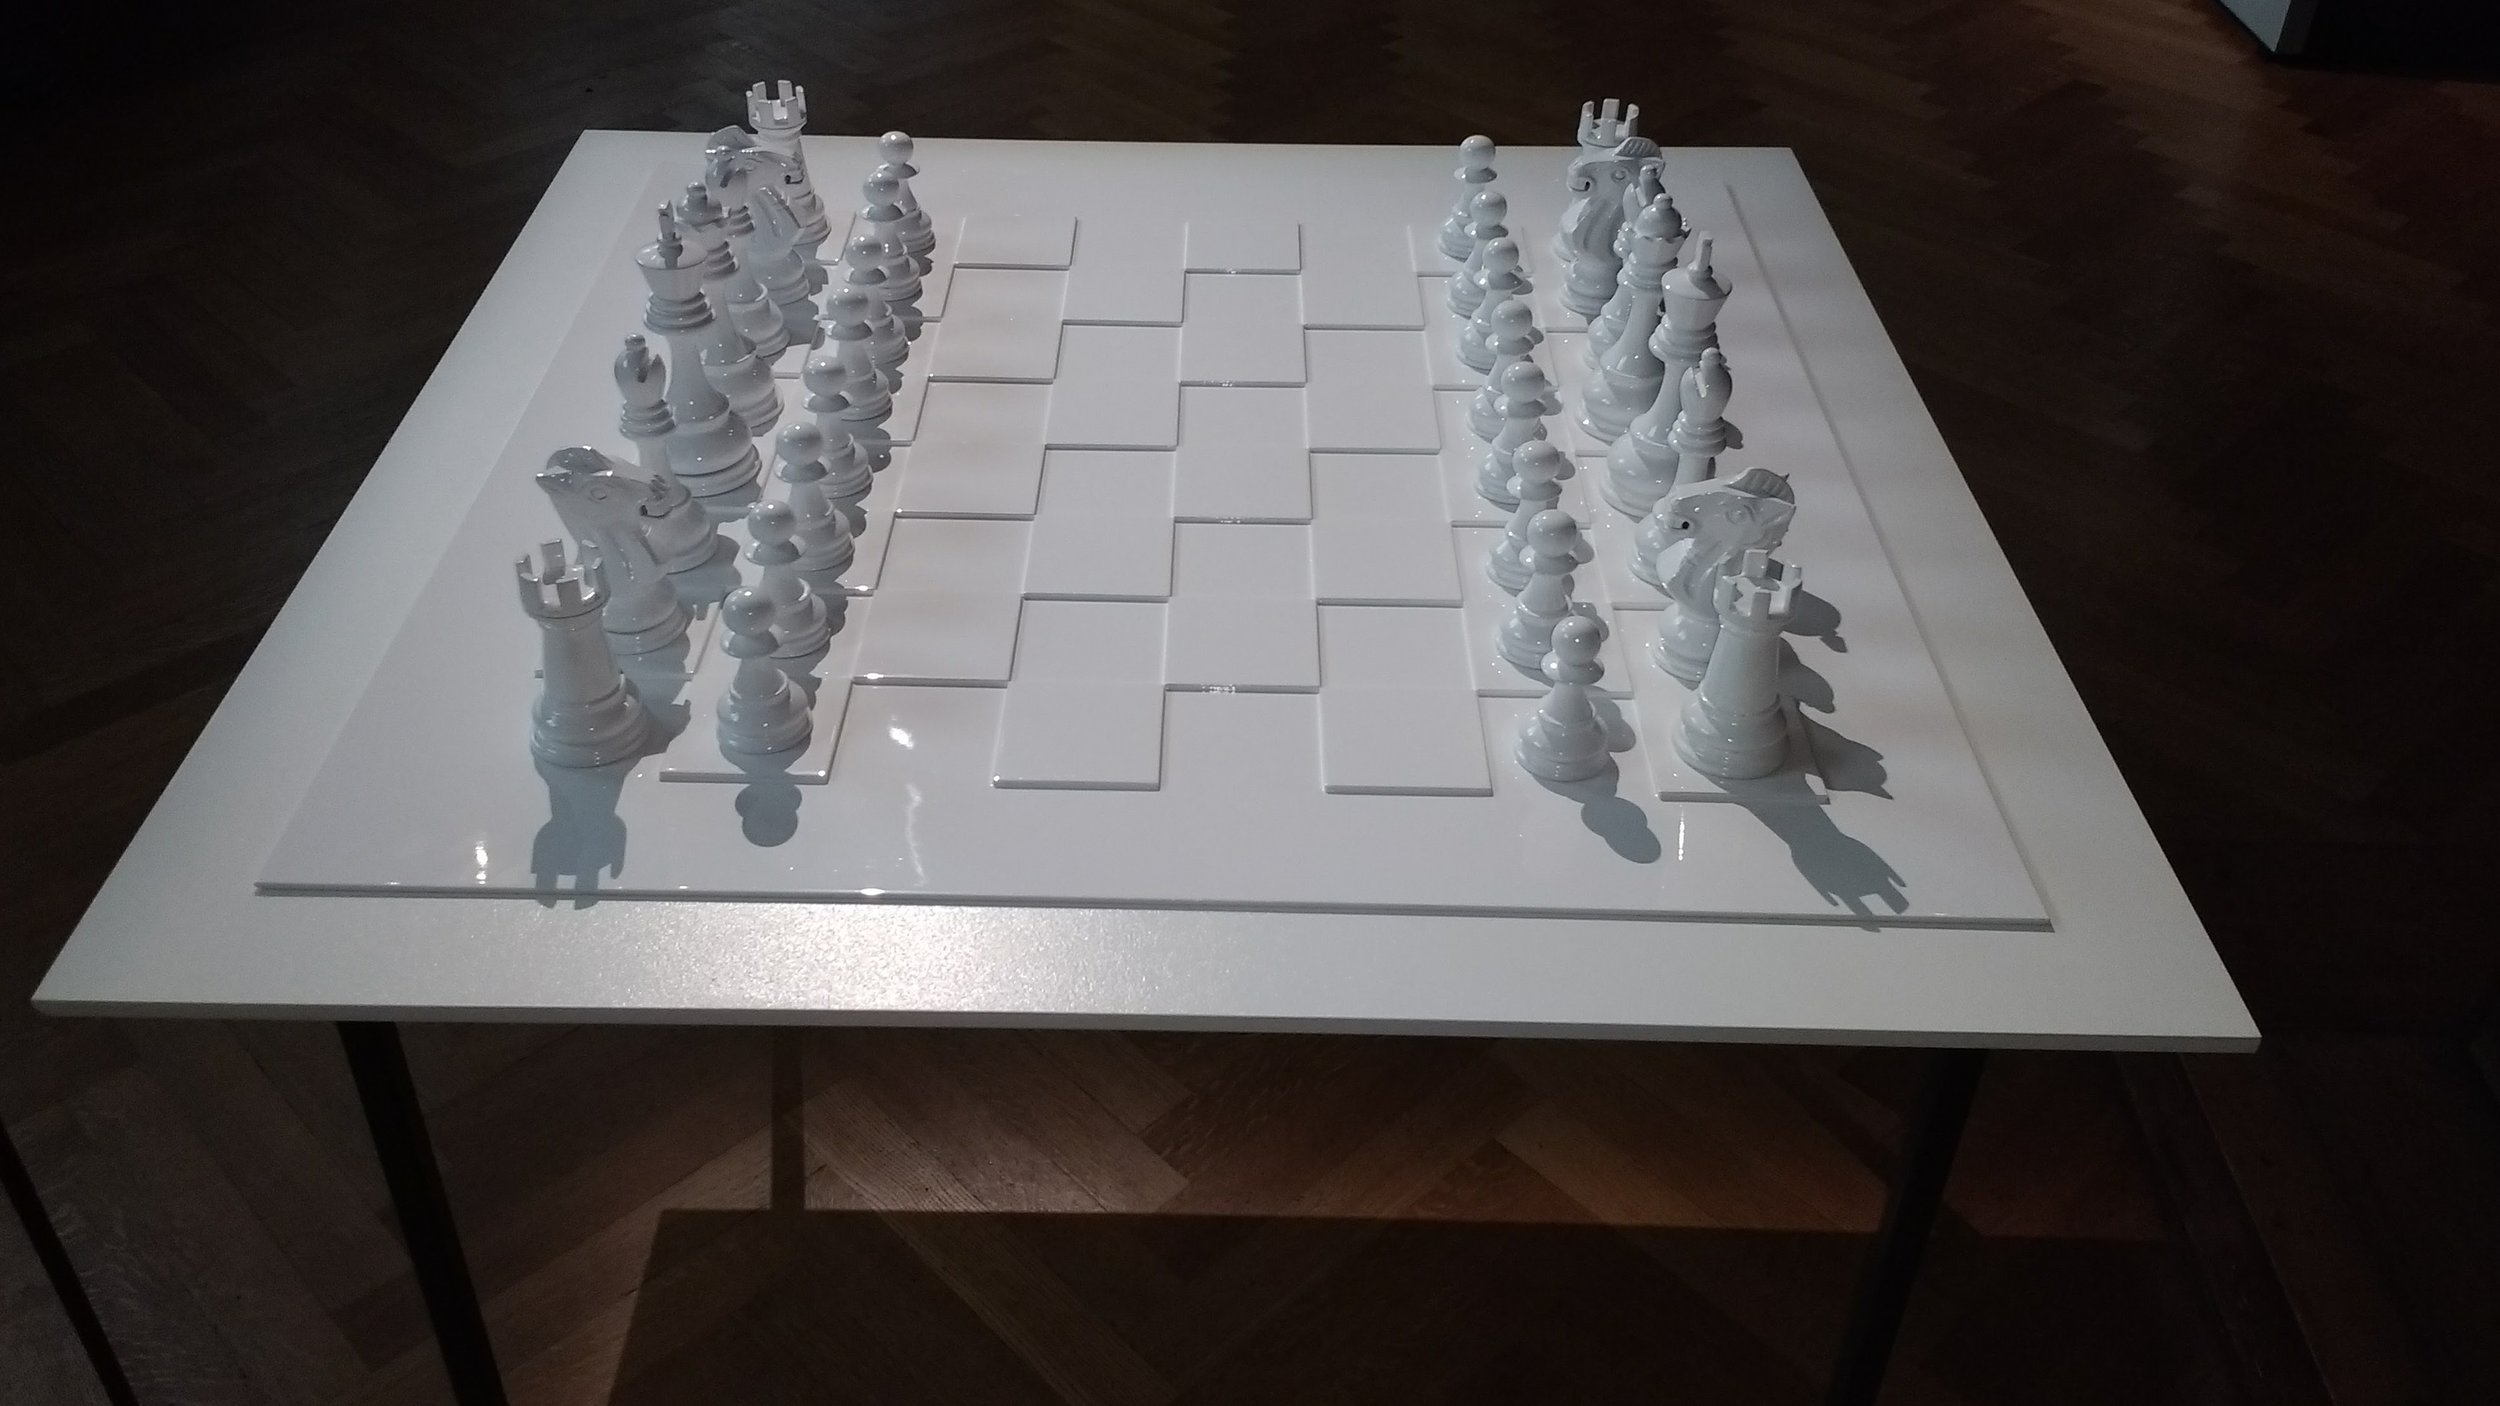 Yoko Ono, 'Play it by Trust' (whie chess set), 1966/2009